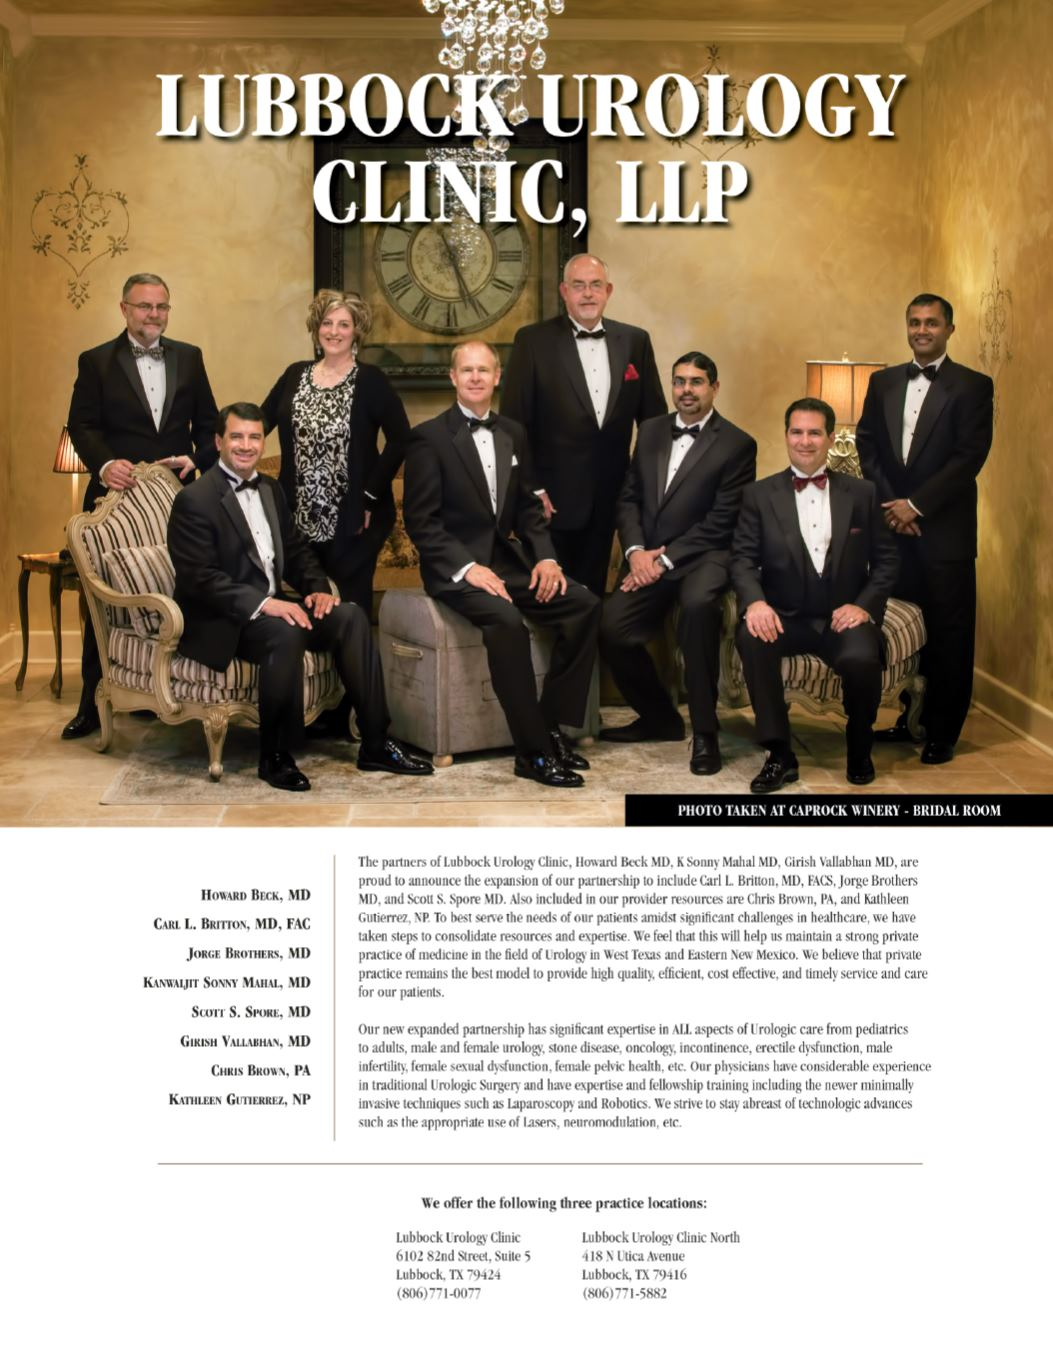 Lubbock Urology Clinic, LLP